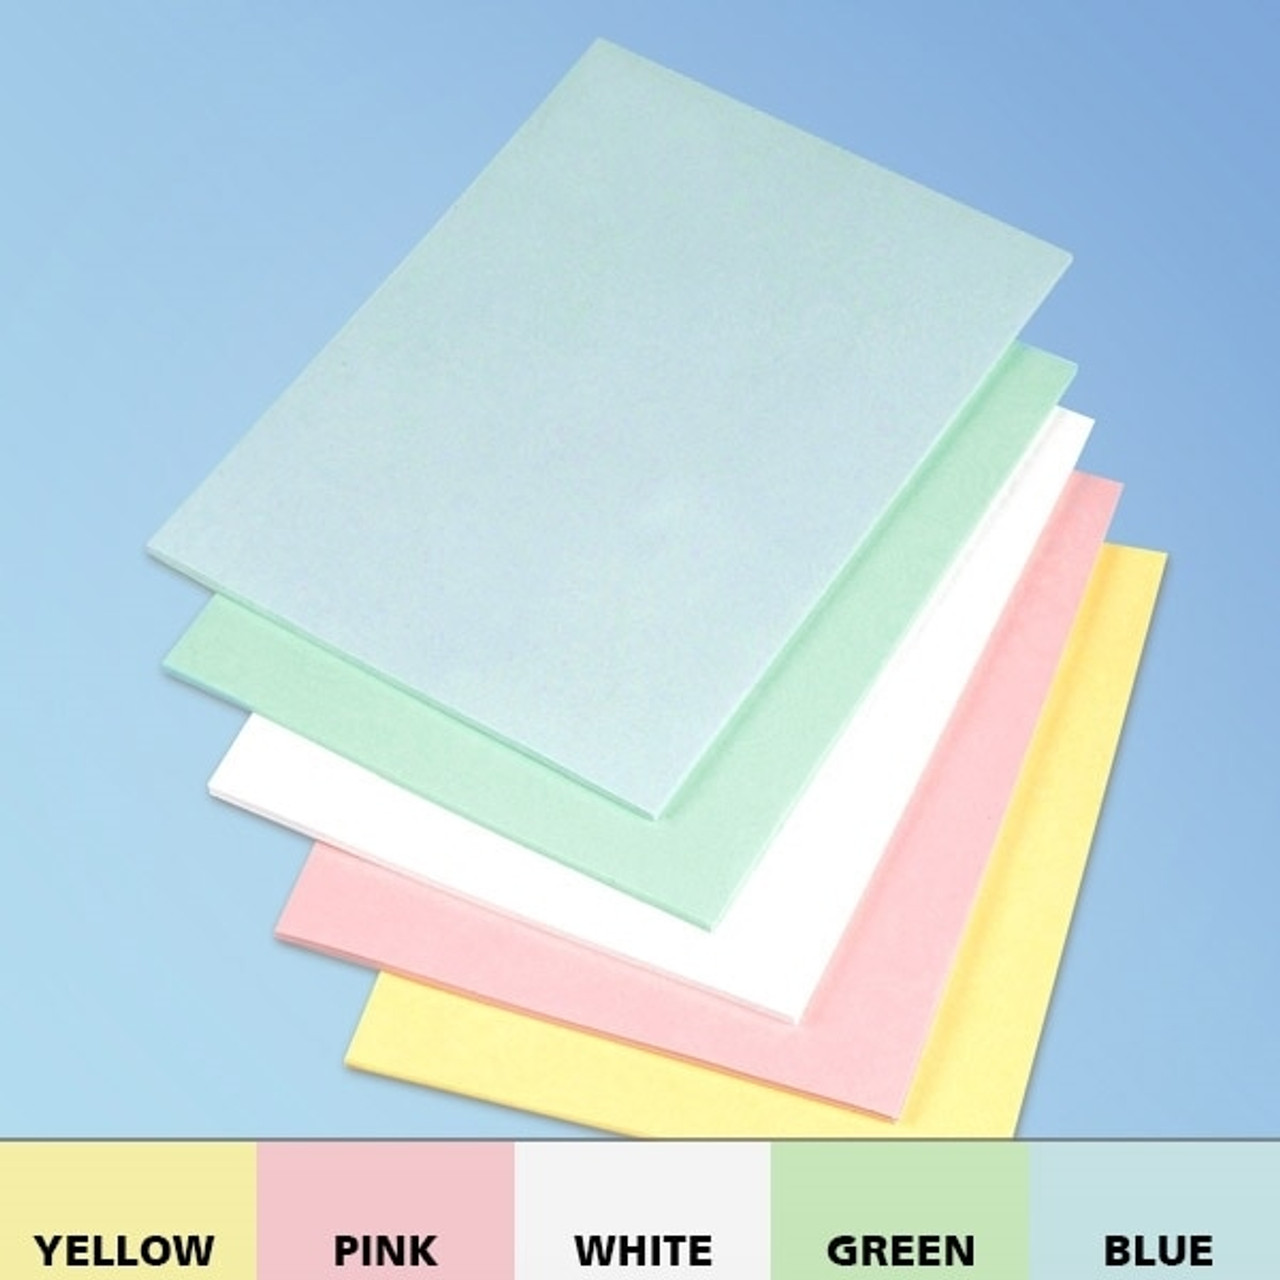 Cleanroom Supplies Cleanroom Paper